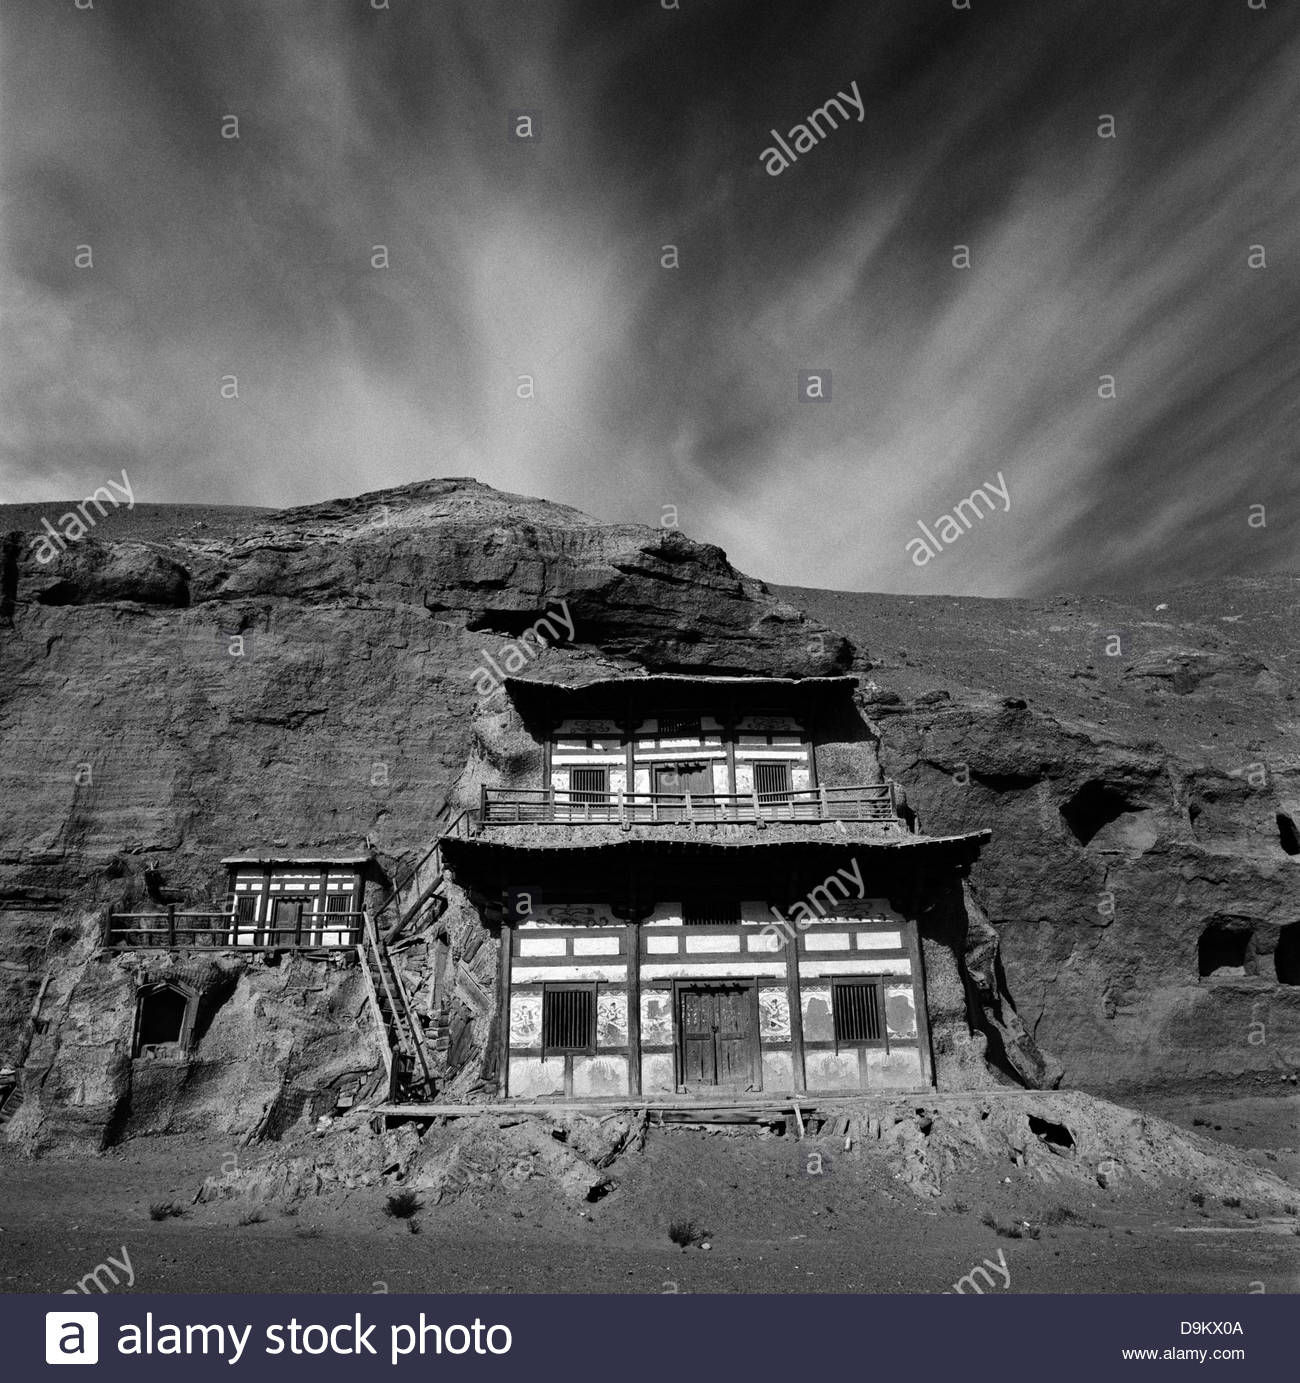 The Mogao grottoes, or caves, Silk Route; Dunhuang, Jiuquan, Gansu Province, China. - Stock Image